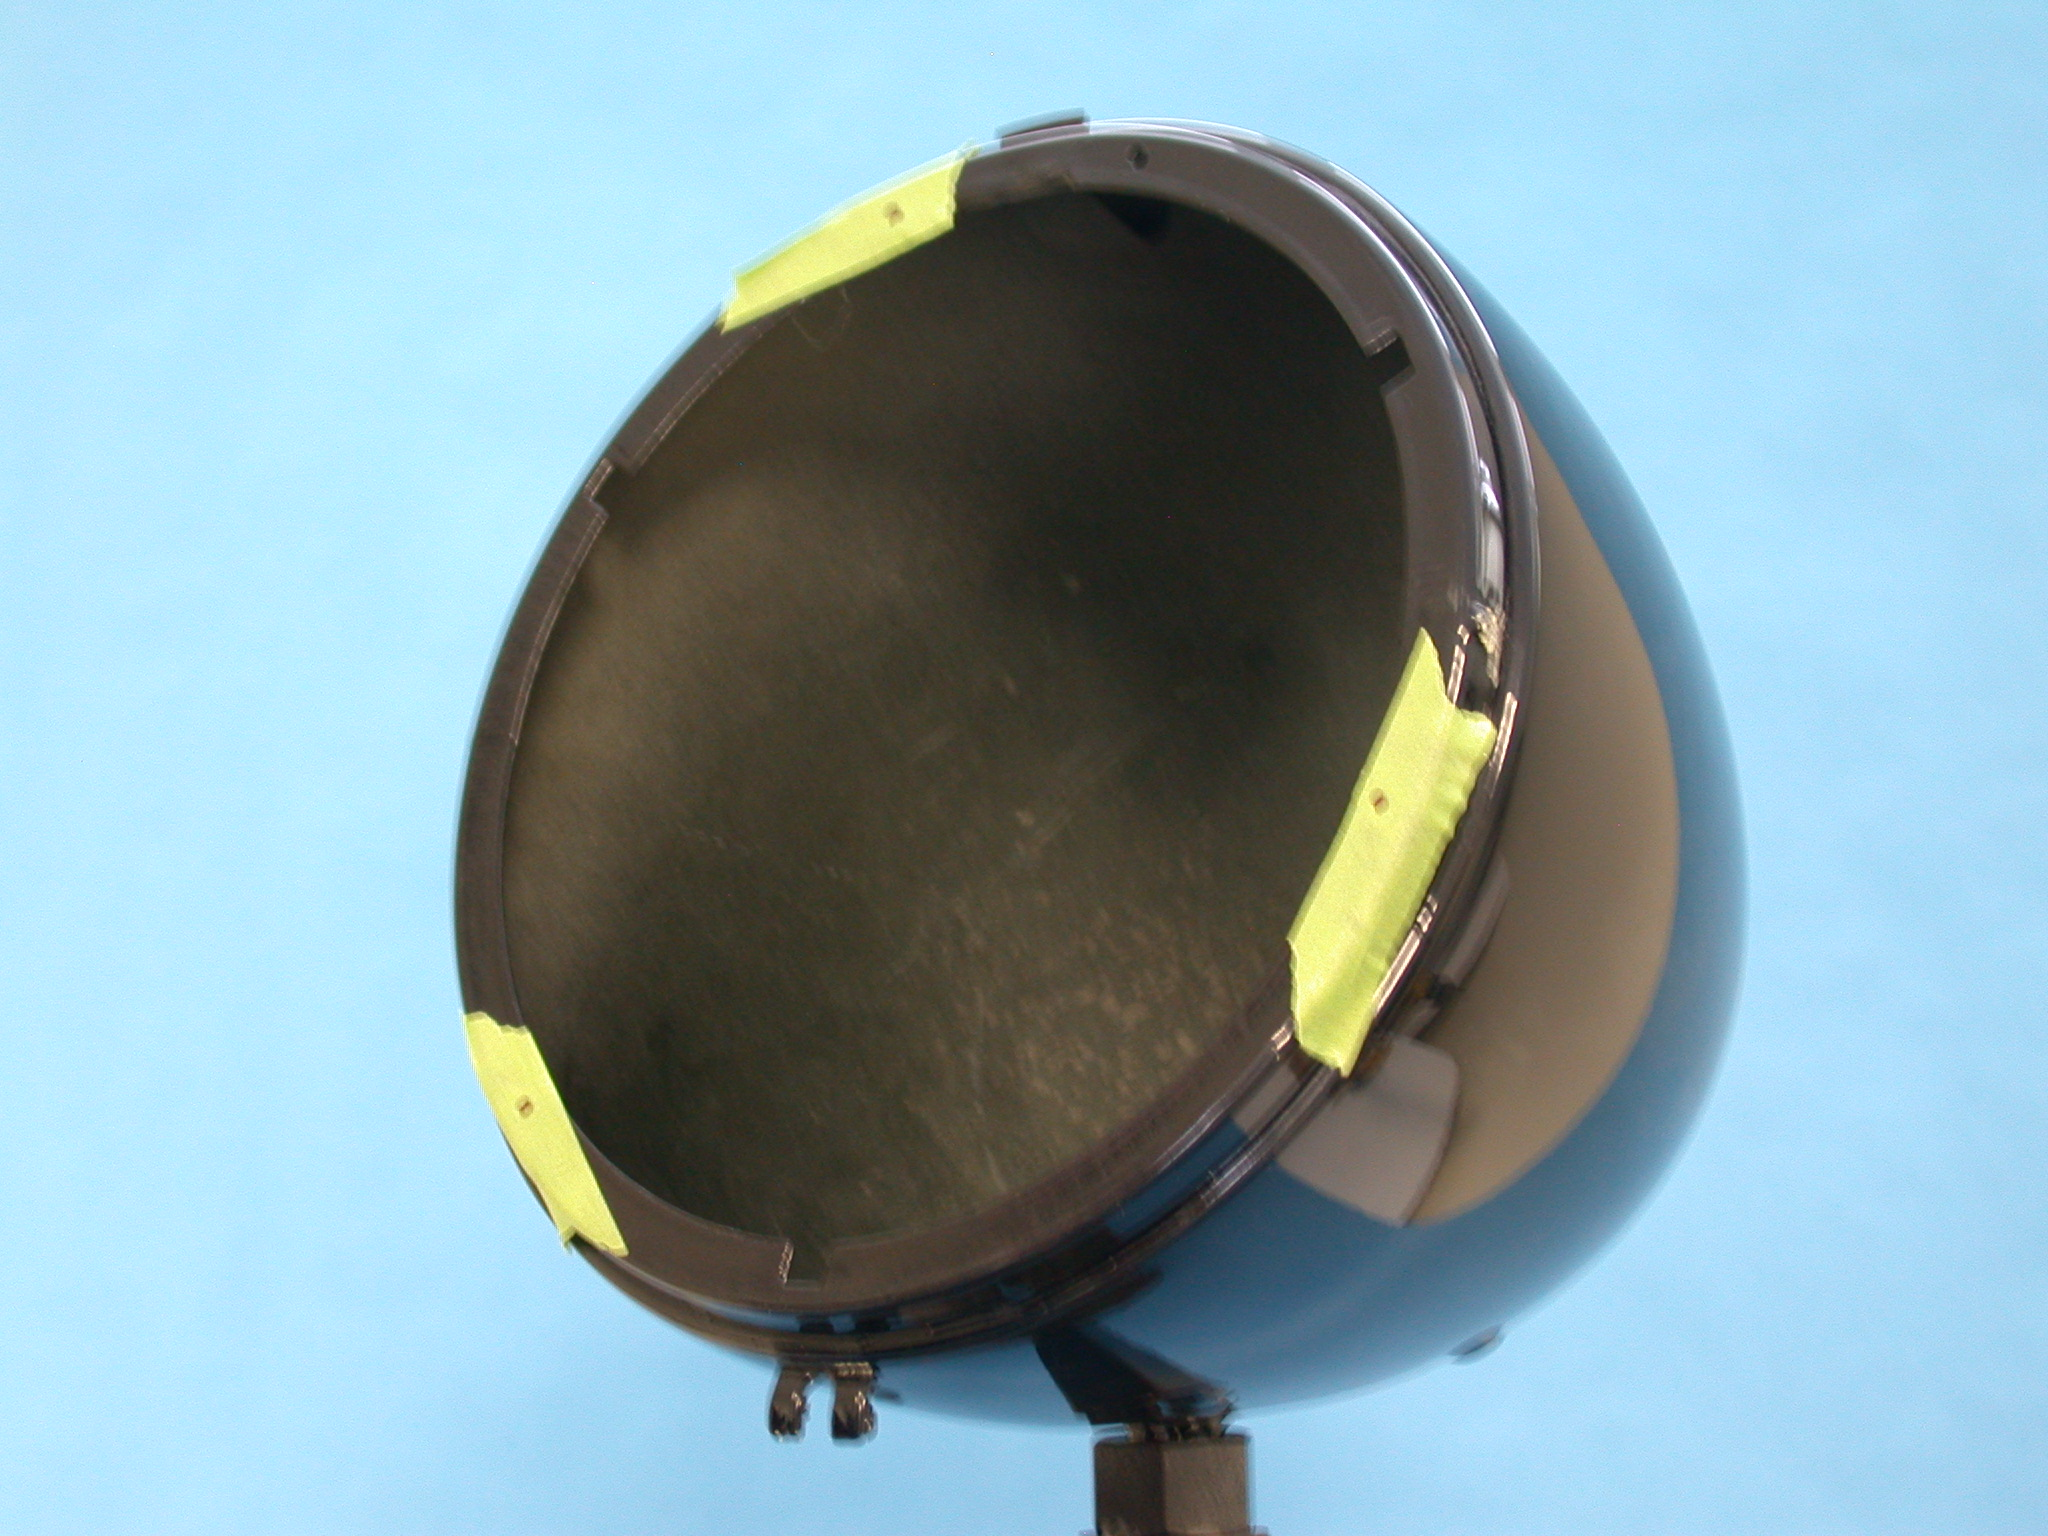 PLACE TAPE ON BUCKET FOR EASE OF MARKING